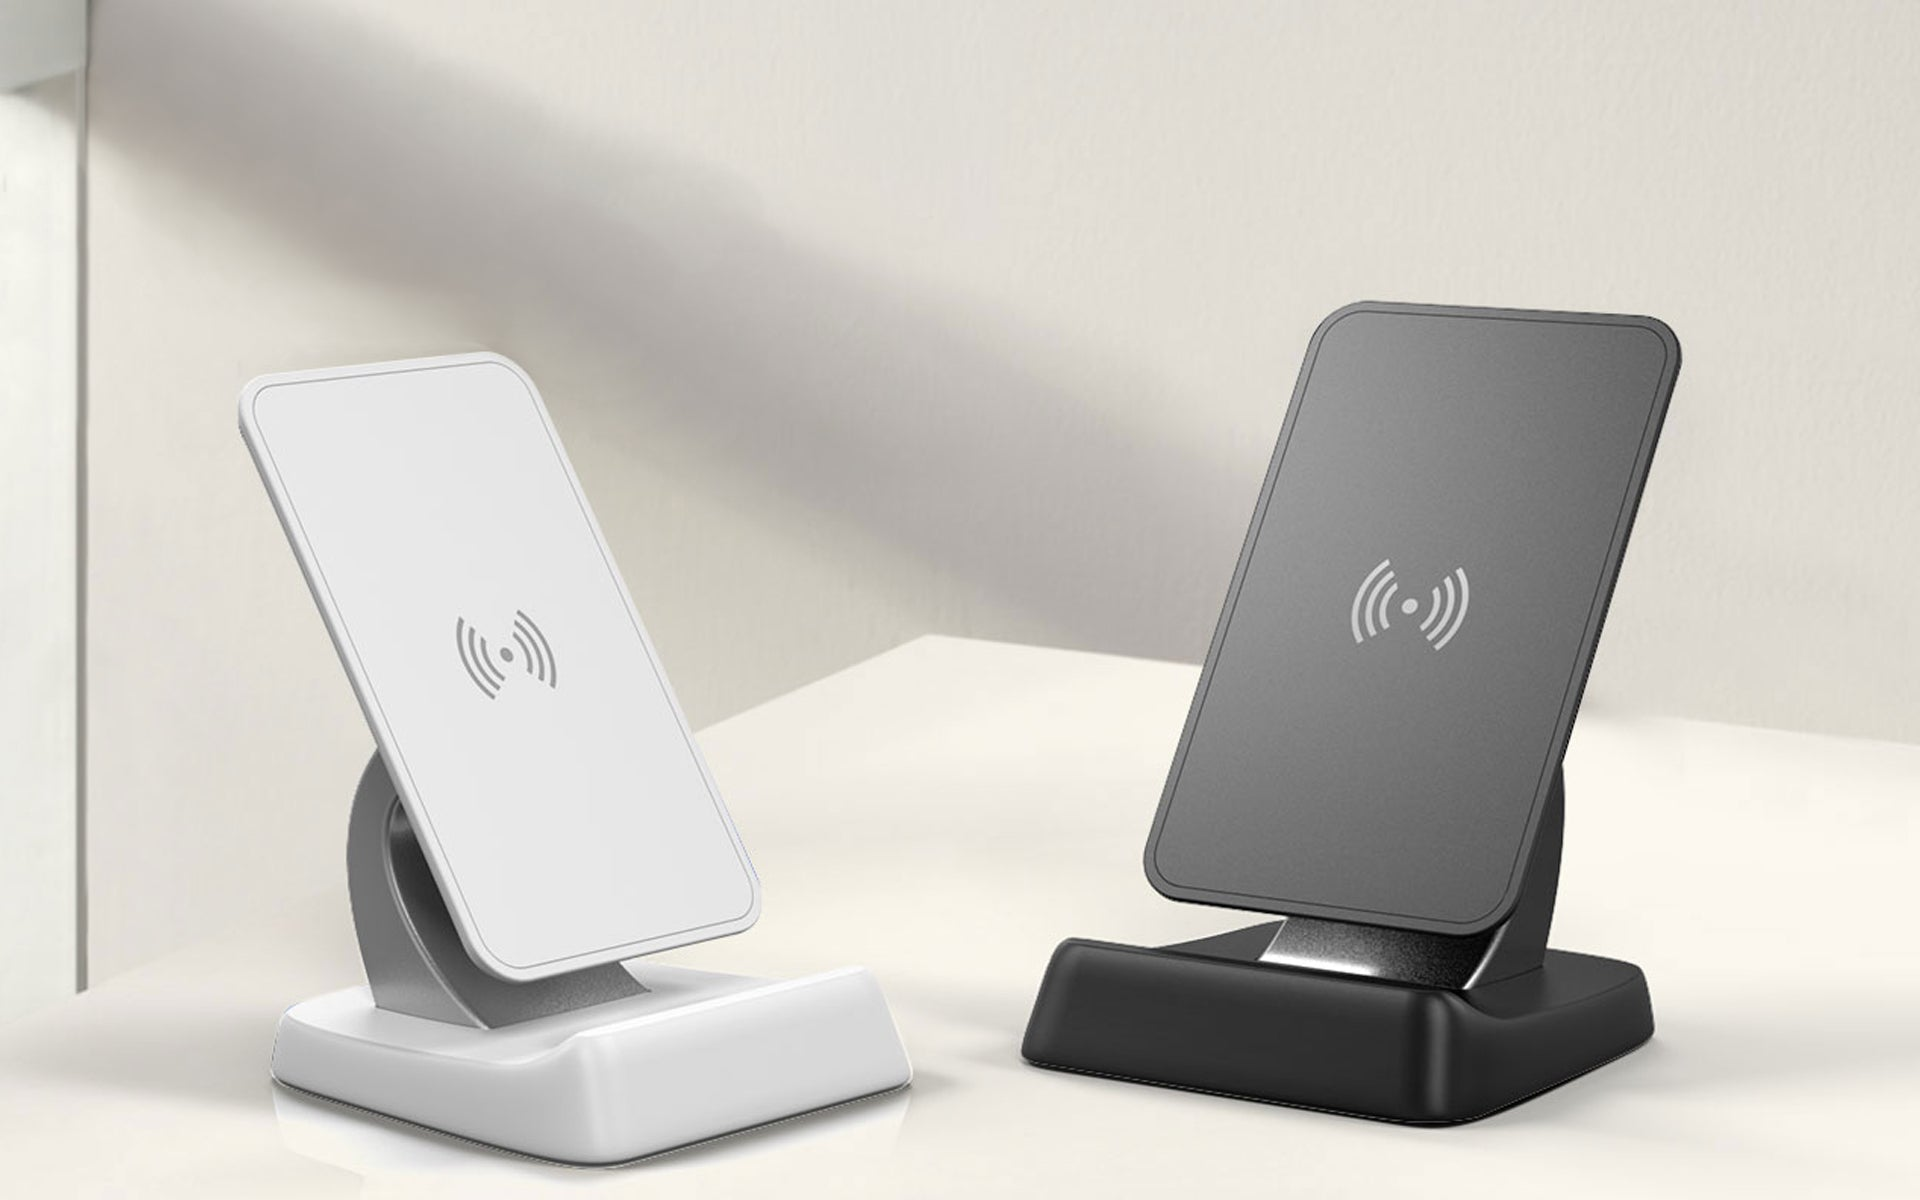 Loowoko-Wireless-Charging-Stand-LWC-S10_01